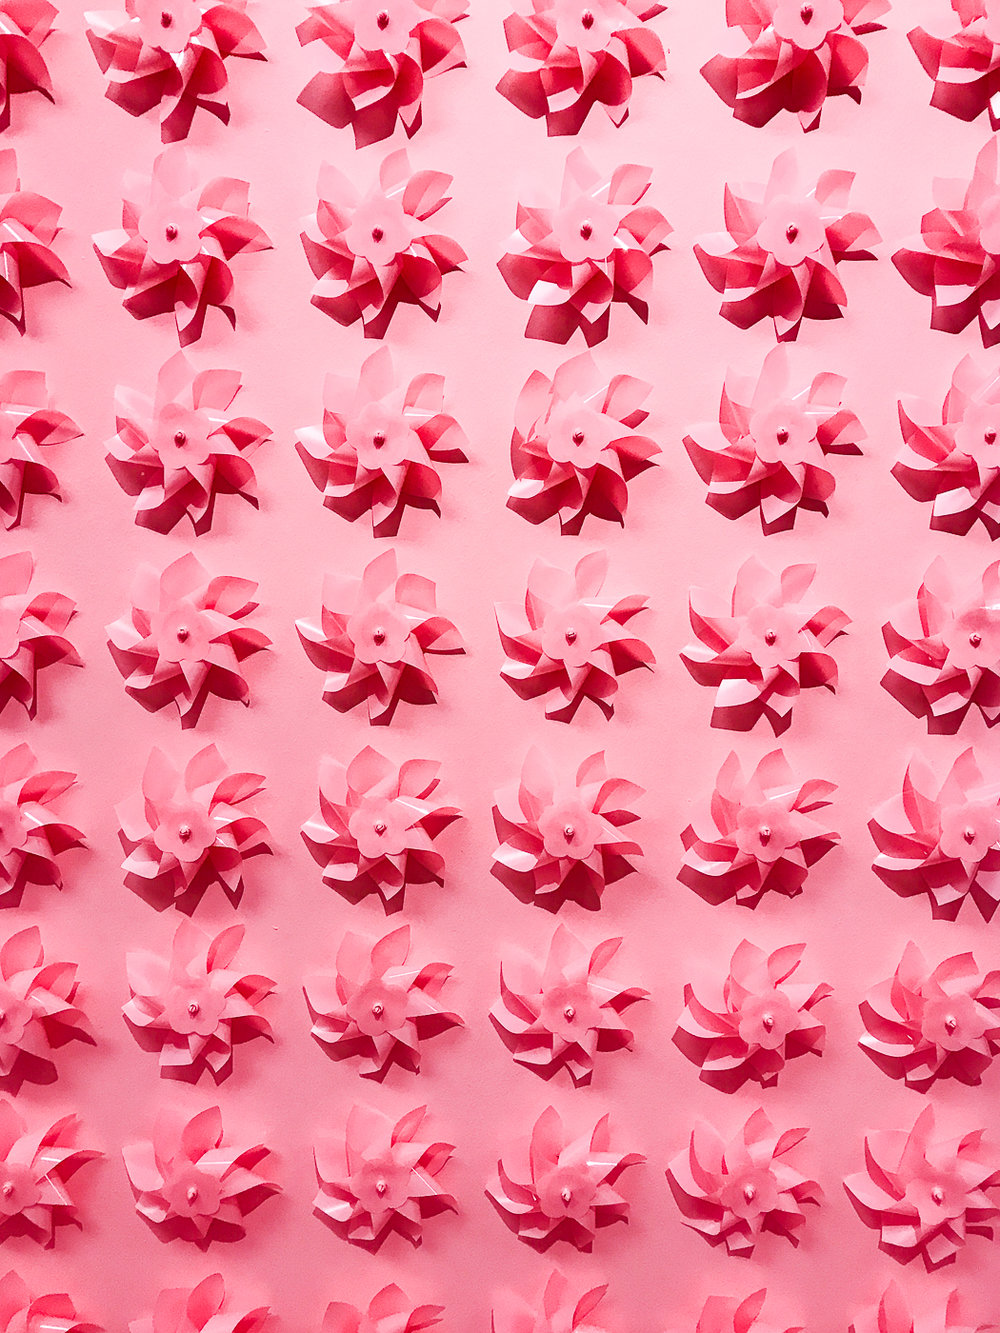 Pinwheels in MOIC's Ring Toss Room | The Chic Diary